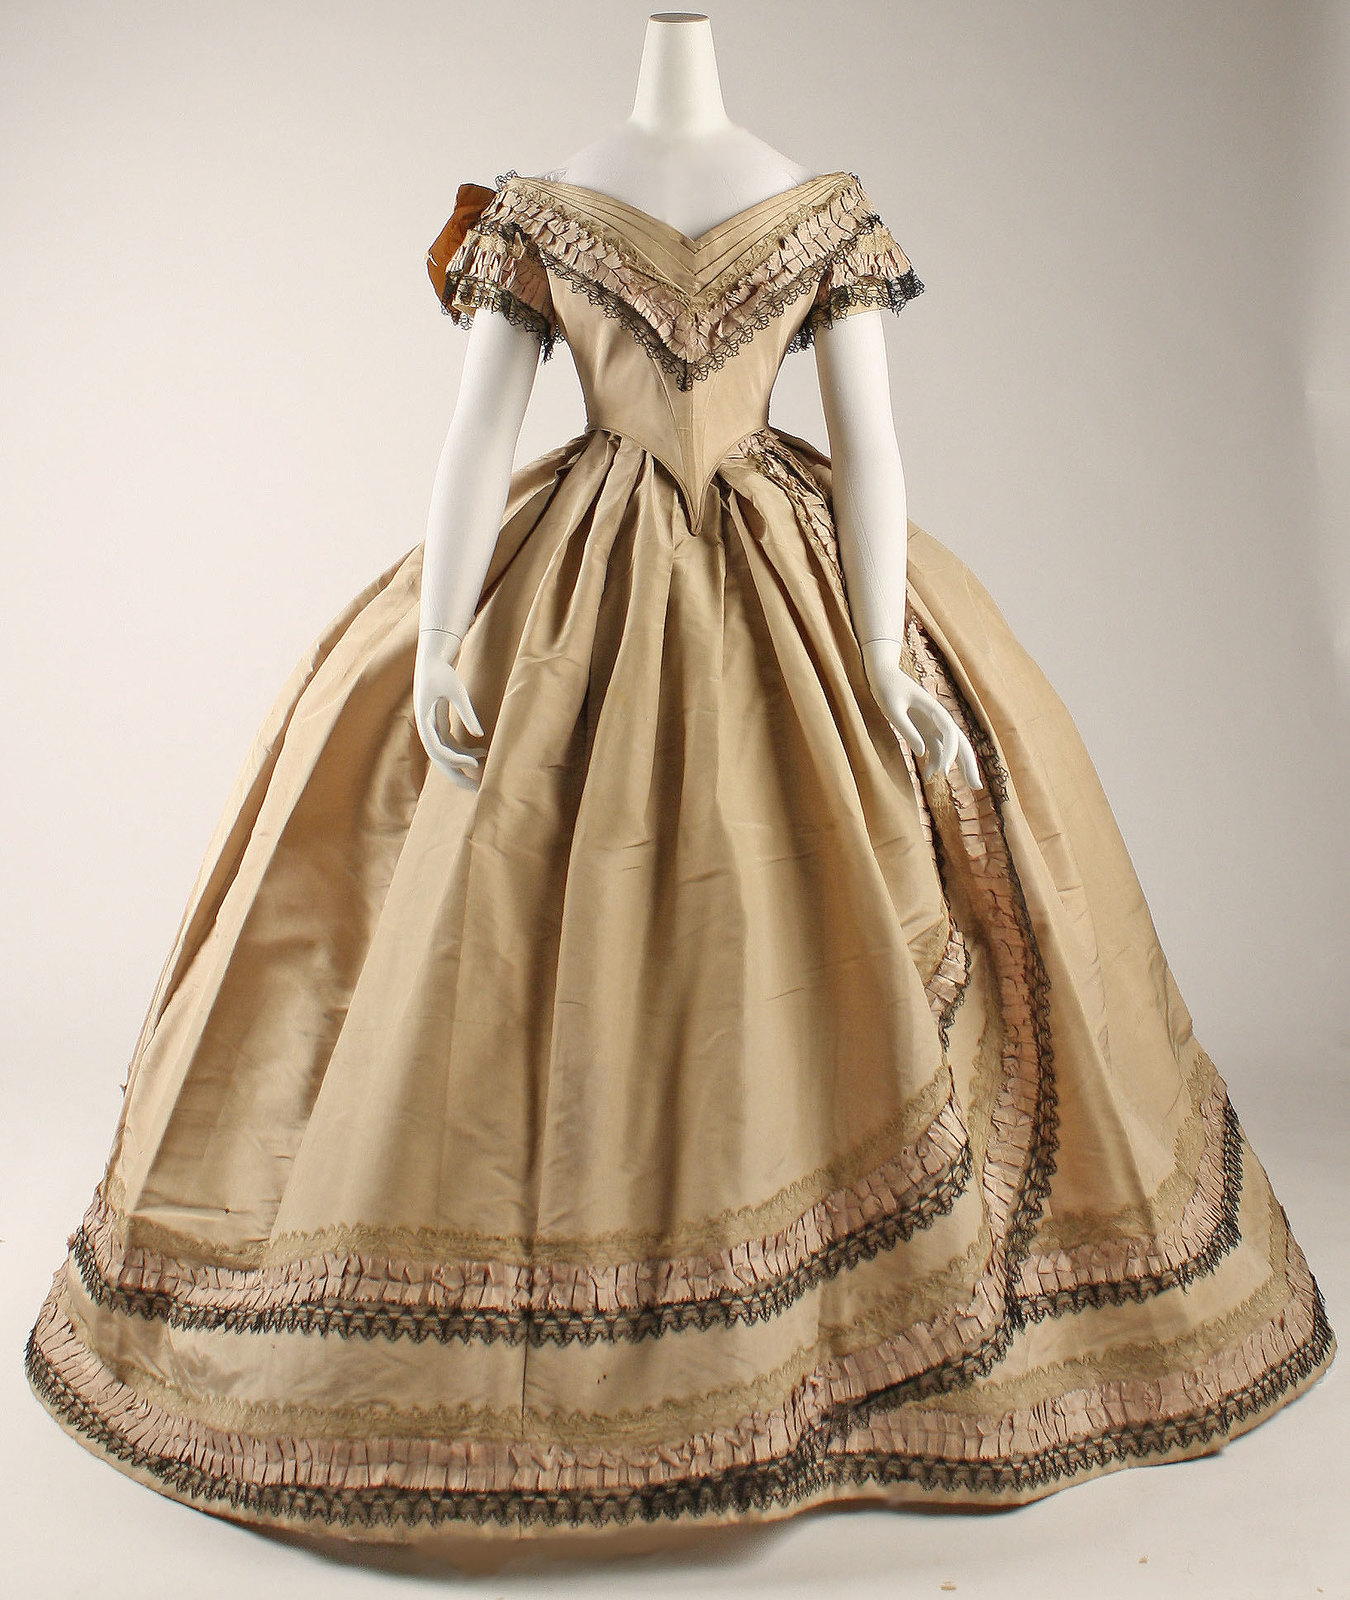 1860-64, British, silk. metmuseum